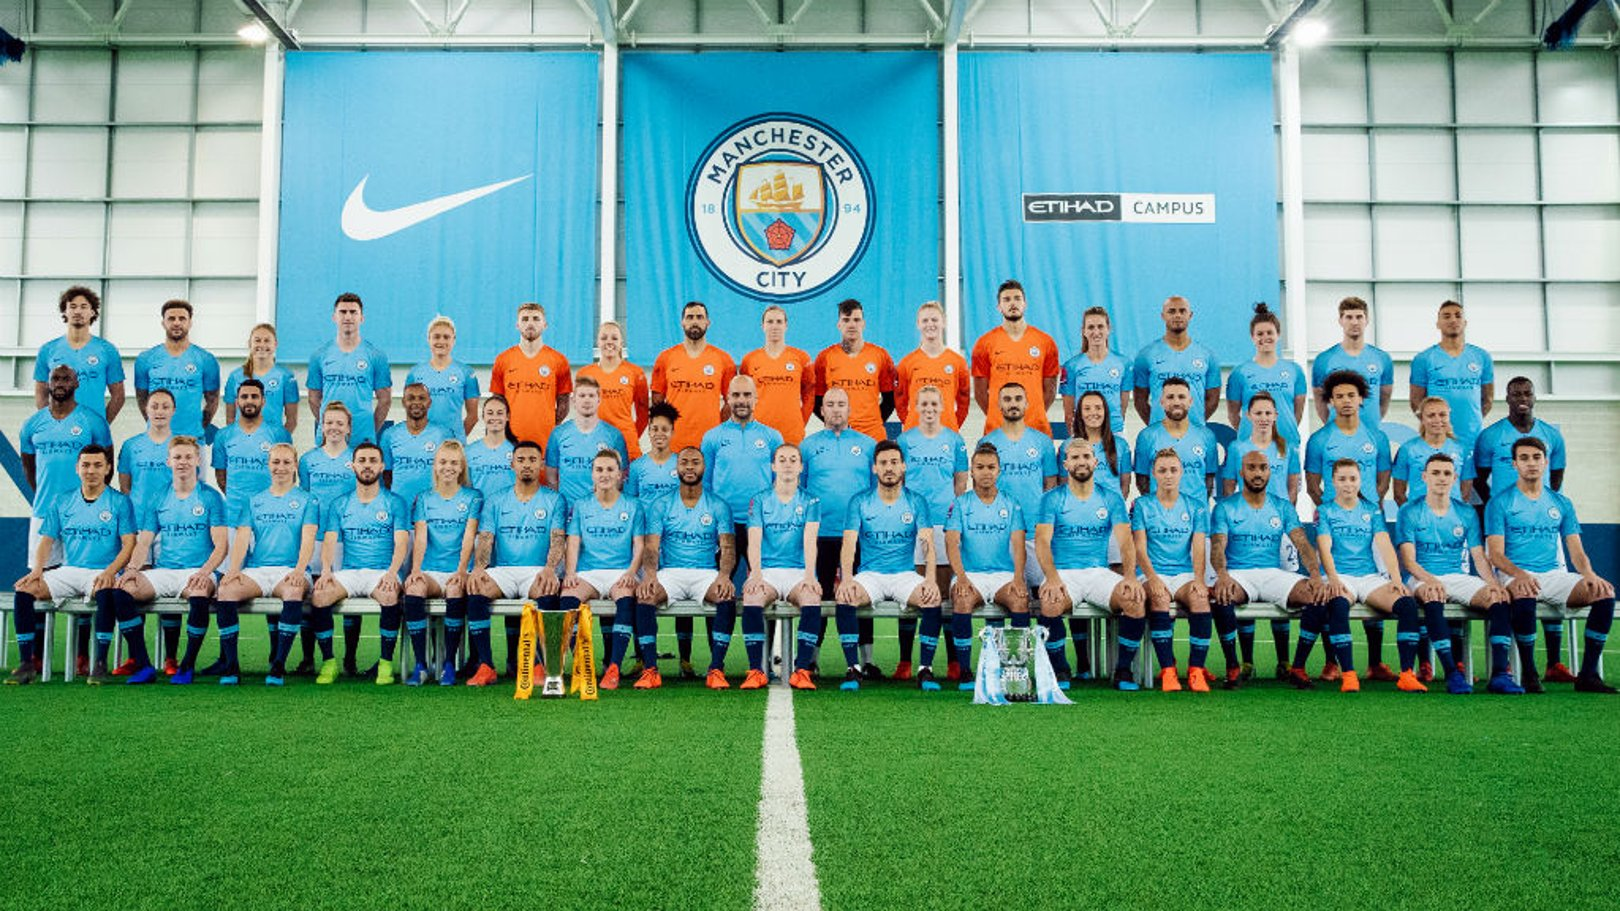 HISTORY MAKERS: Pep Guardiola and Nick Cushing line up alongside their two squads with the Continental and Carabao Cups proudly on display